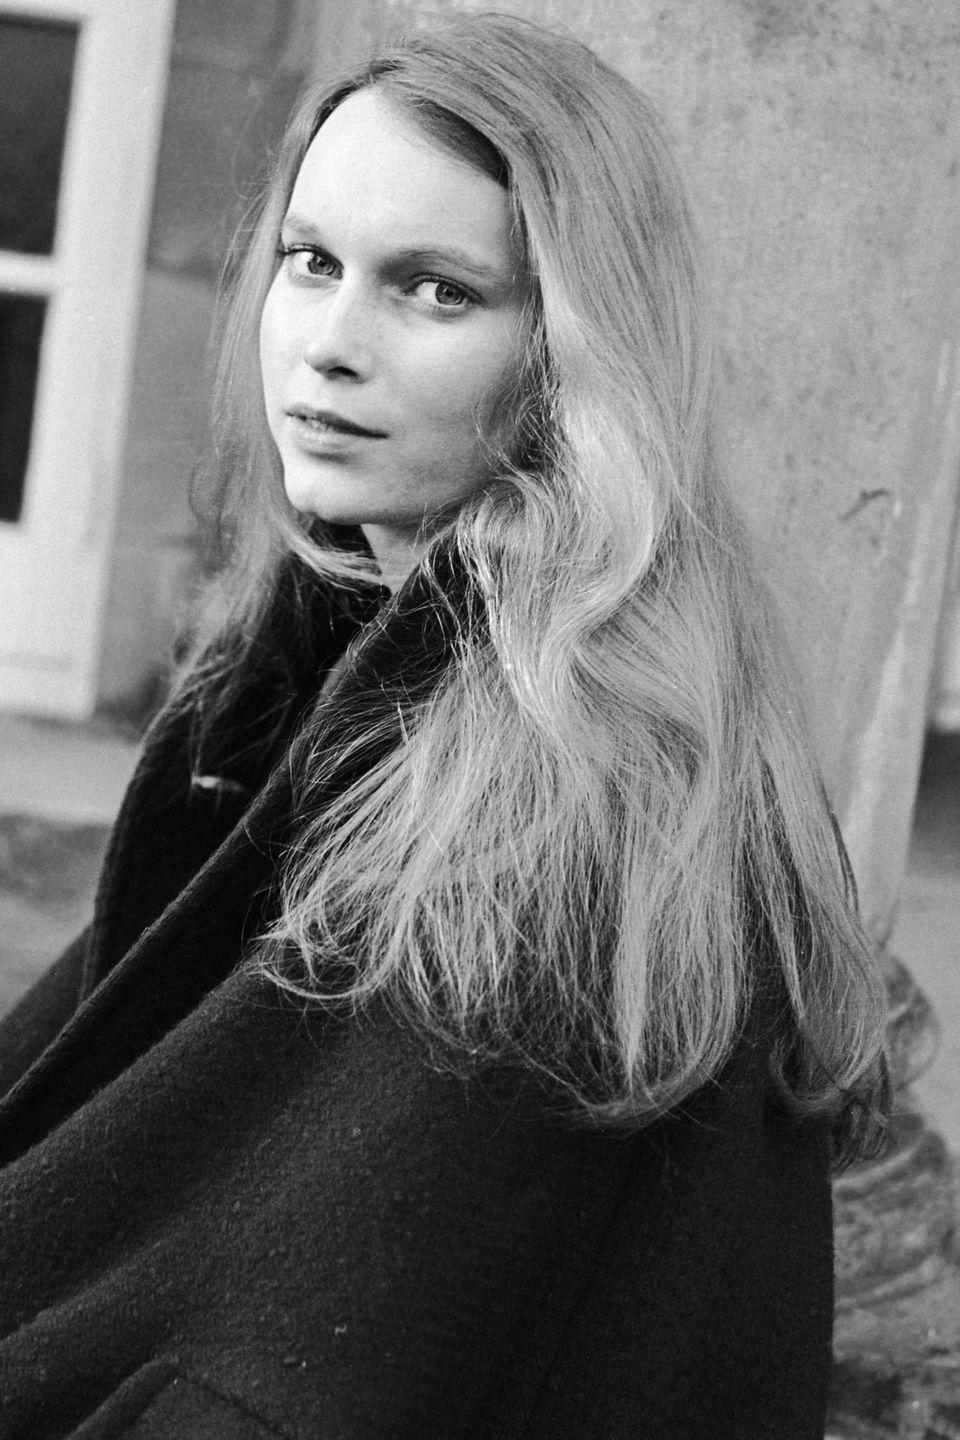 <p>While <em>Peyton Place </em>raised Farrow's profile, the actress was eager to break into film. In 1964, she landed her first starring movie role in <em>Guns at Batasi. </em></p>